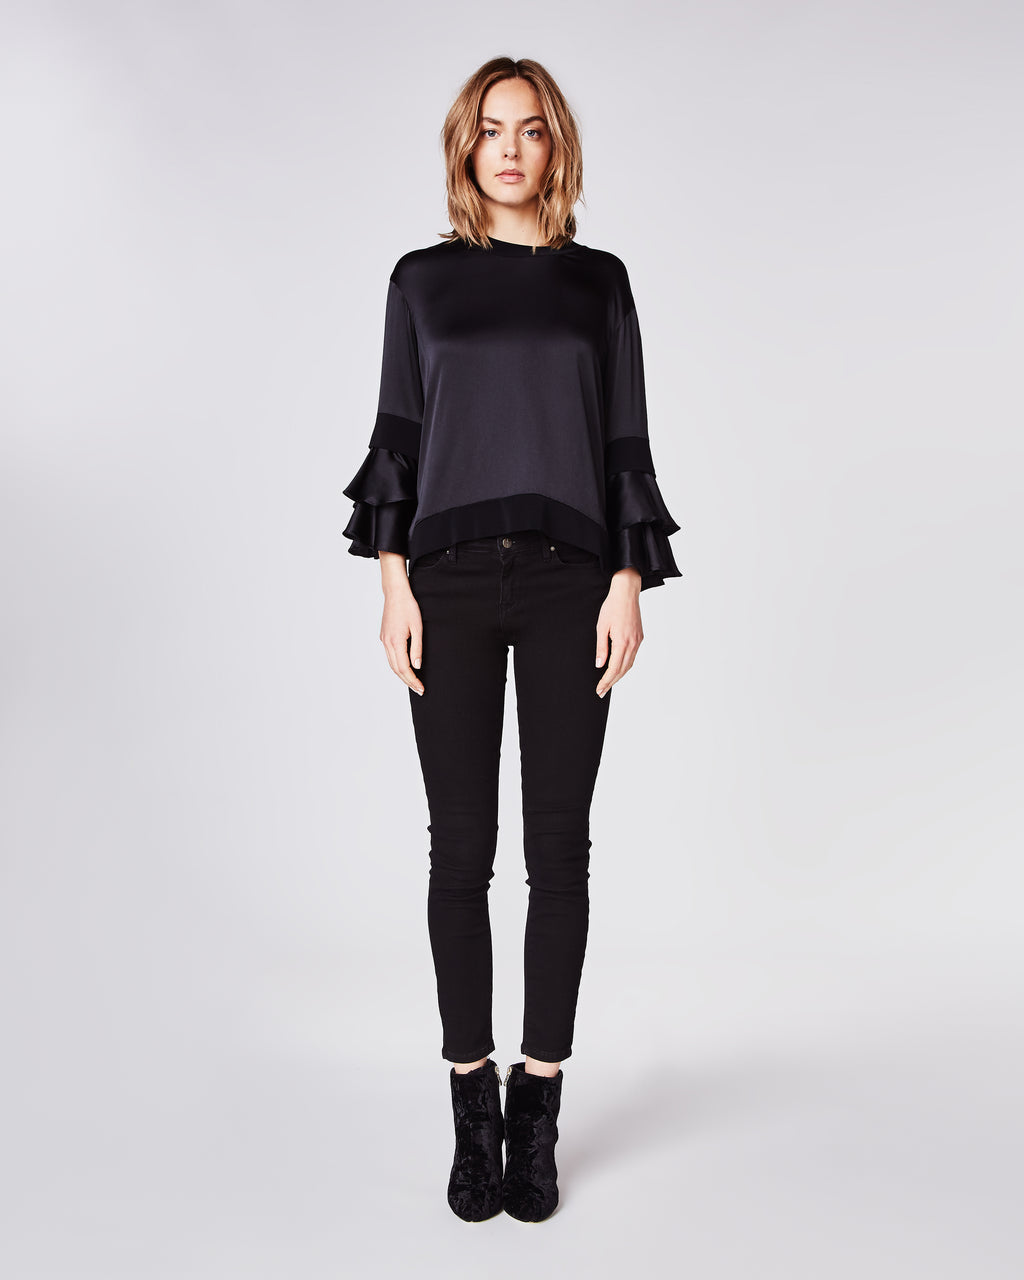 BH10380 - STRETCH CHARMEUSE RUFFLE SLeeve top - tops - shirts - In a silky charmeuse, this crewneck top features statement ruffle 3/4 length sleeves and is unlined.